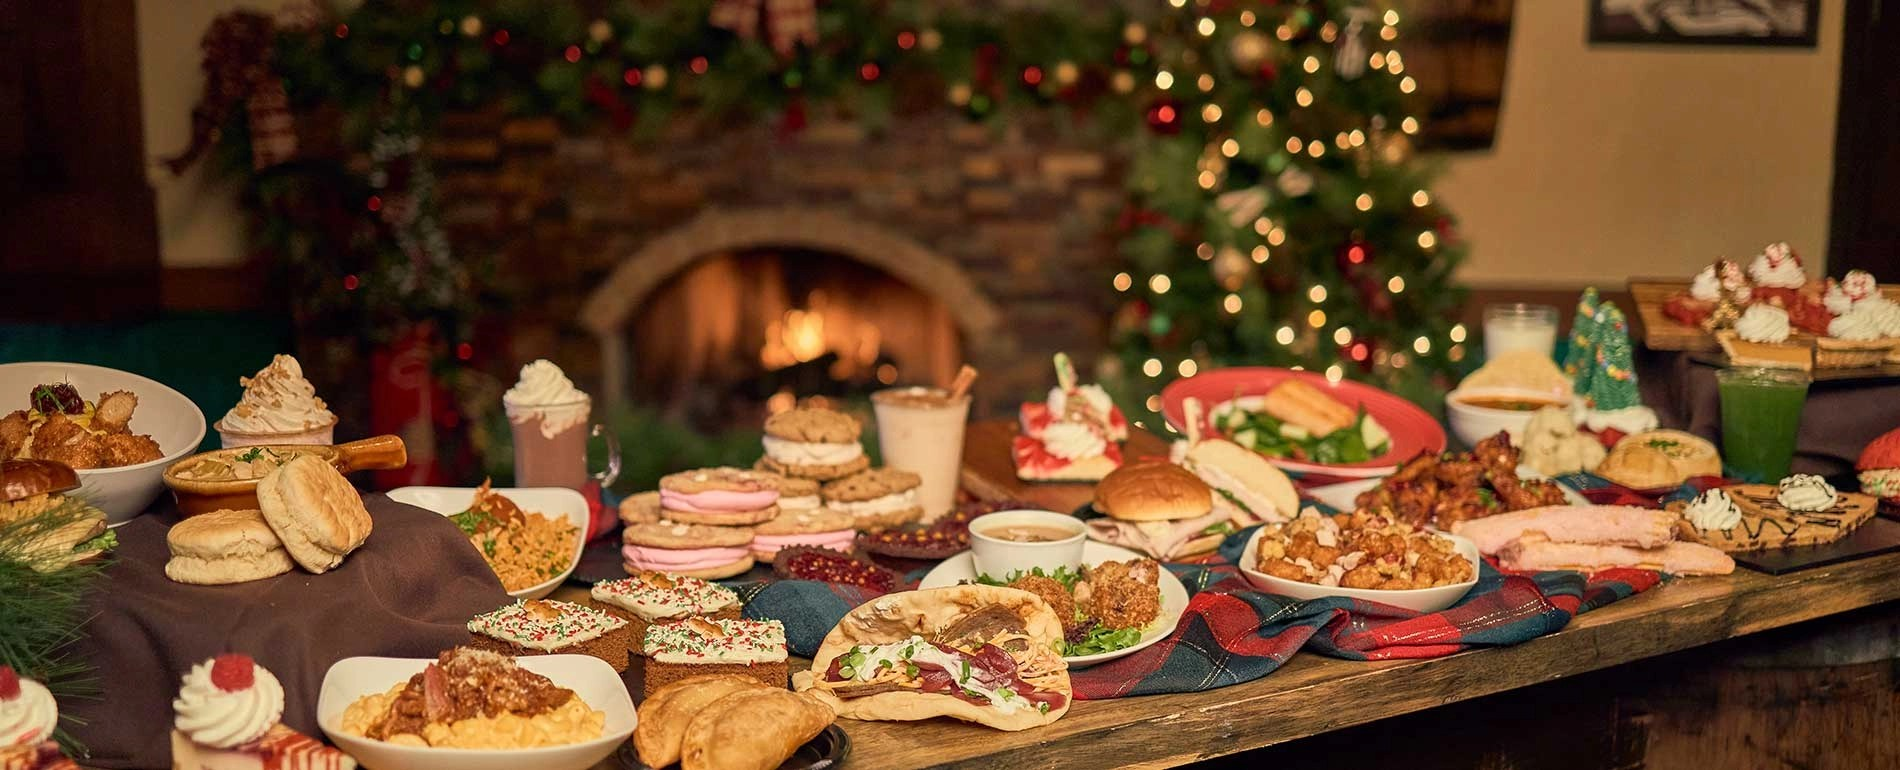 Knott's Berry Farm rings in the holidays with Knott's Taste of Merry Farm